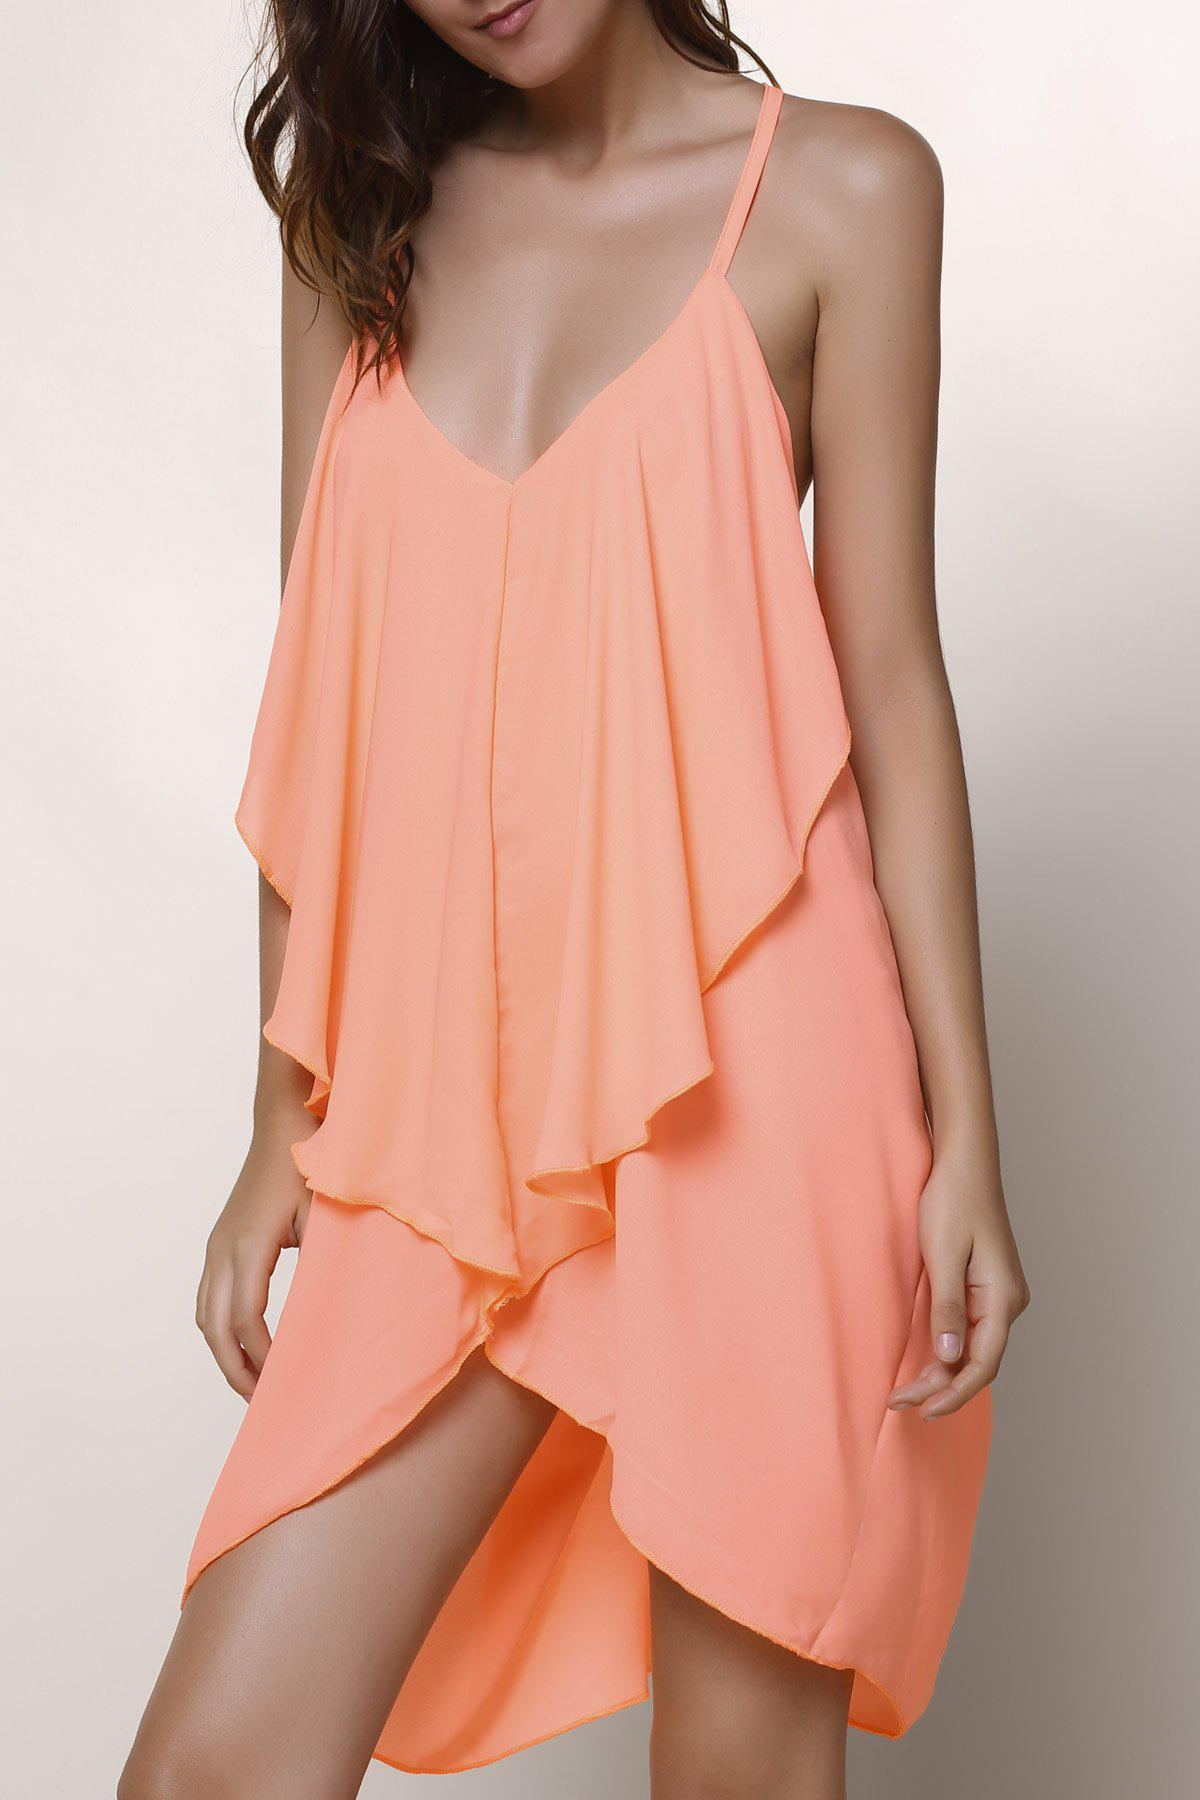 Stylish Sleeveless V-Neck Asymmetrical Chiffon Women's Dress